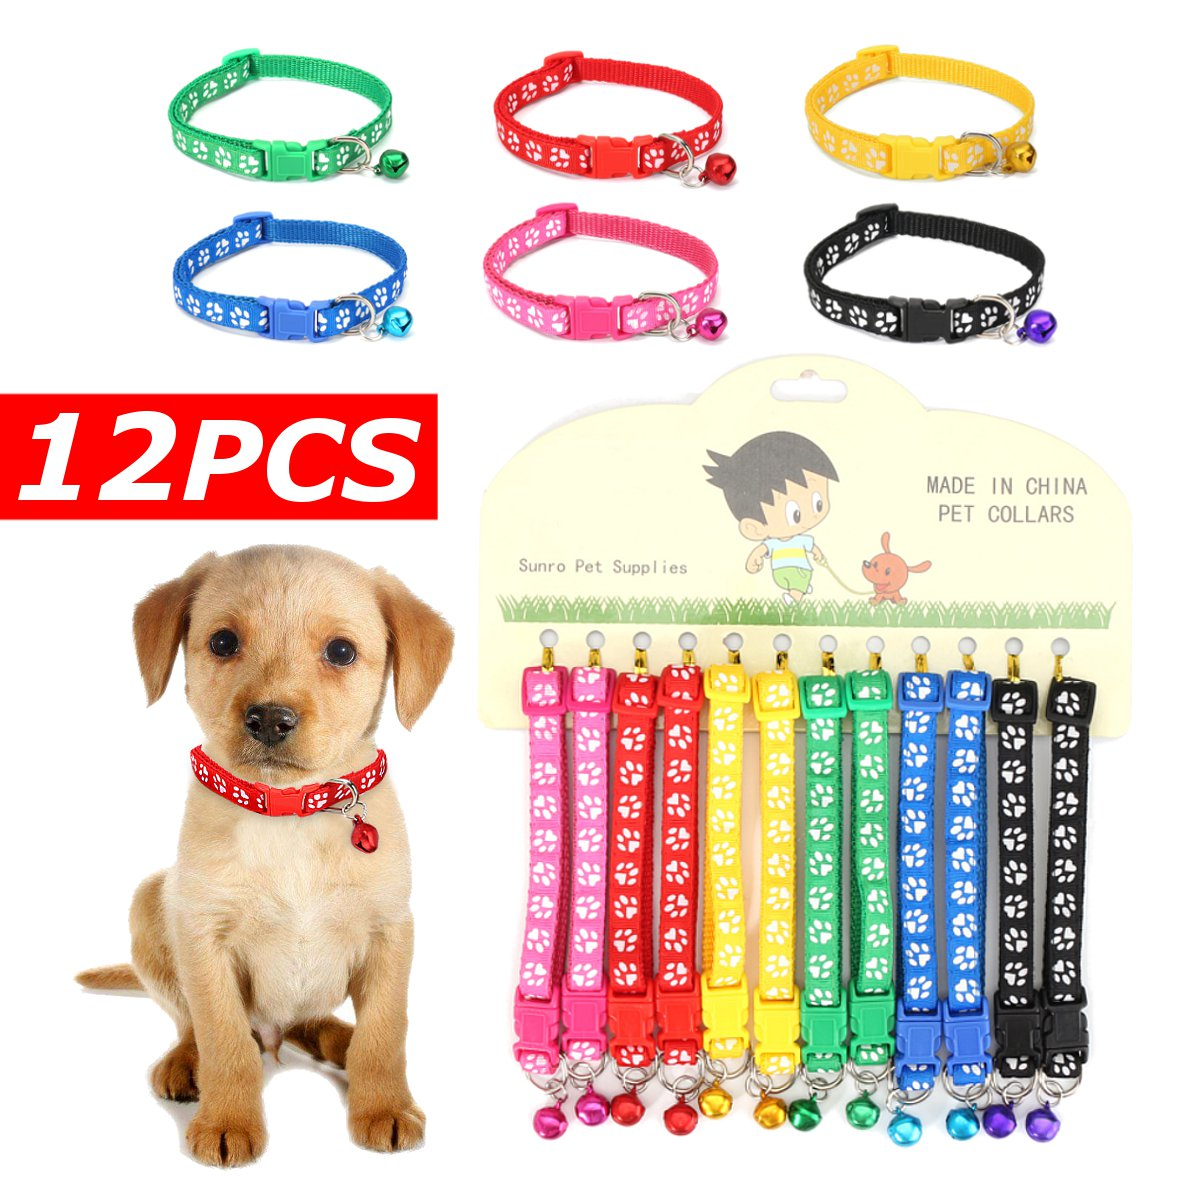 1428c7700 Collars Dog Collars & Leads Rational 12pcs/set Adjustable Pet Collar With  Bell Lovely Small Footprint Flower Strap Nylon Fabric Puppy Teddy Cat  Kitten Dog ...